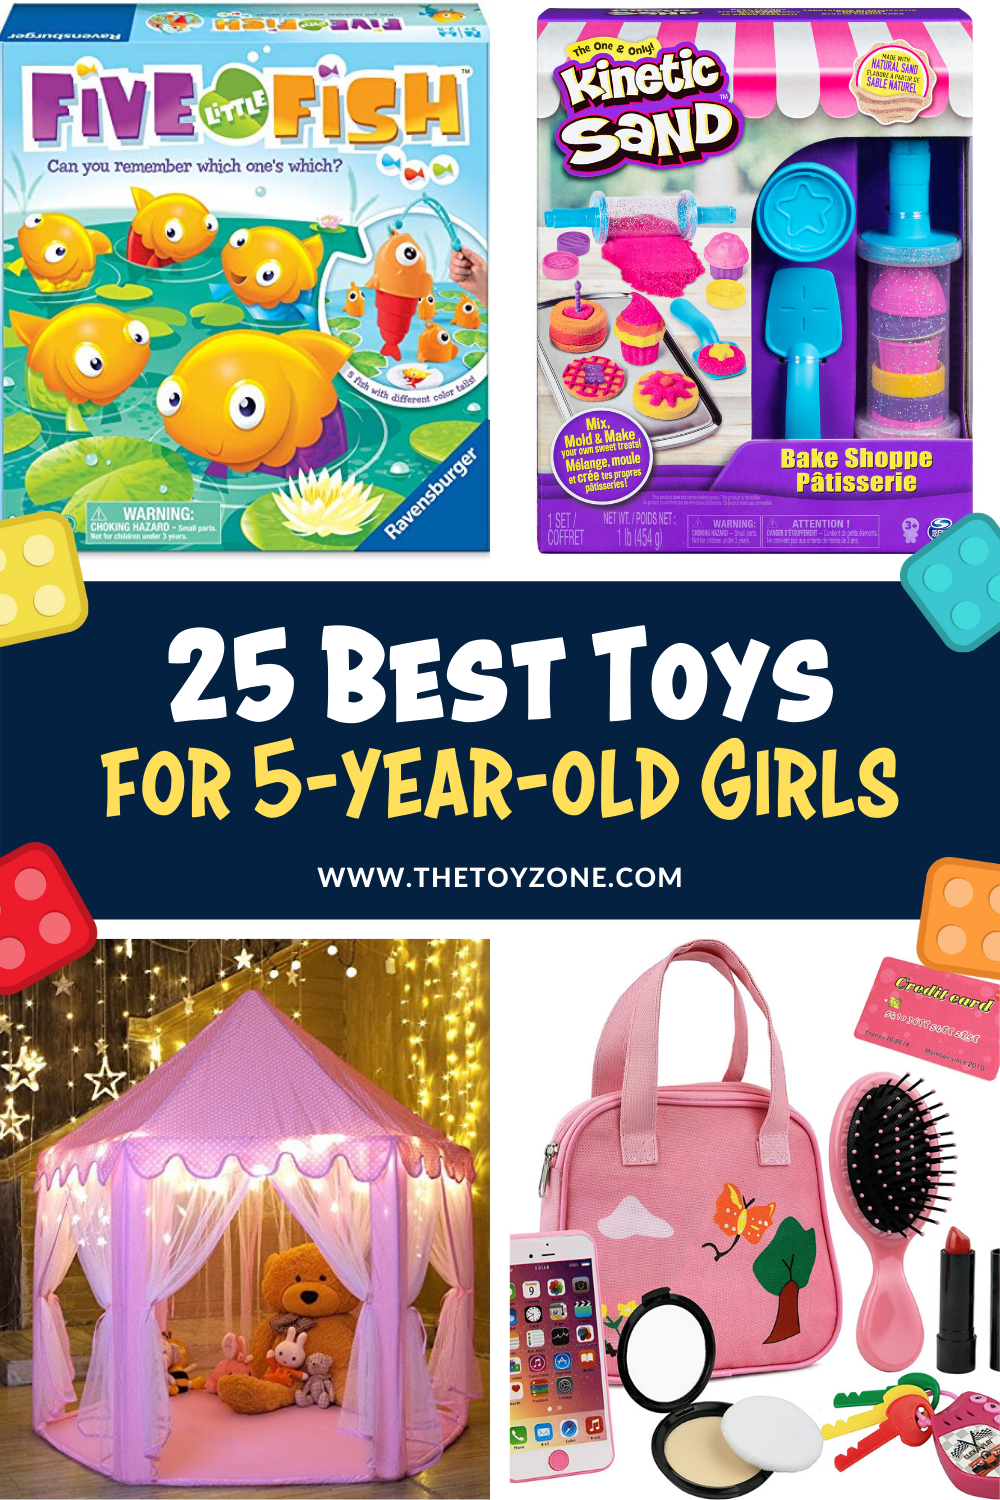 25 Best Toys For 5 Year Old Girls In 2020 Thetoyzone In 2020 Cool Toys For Girls Christmas Gifts For 5 Year Olds Christmas Gifts For Five Year Olds